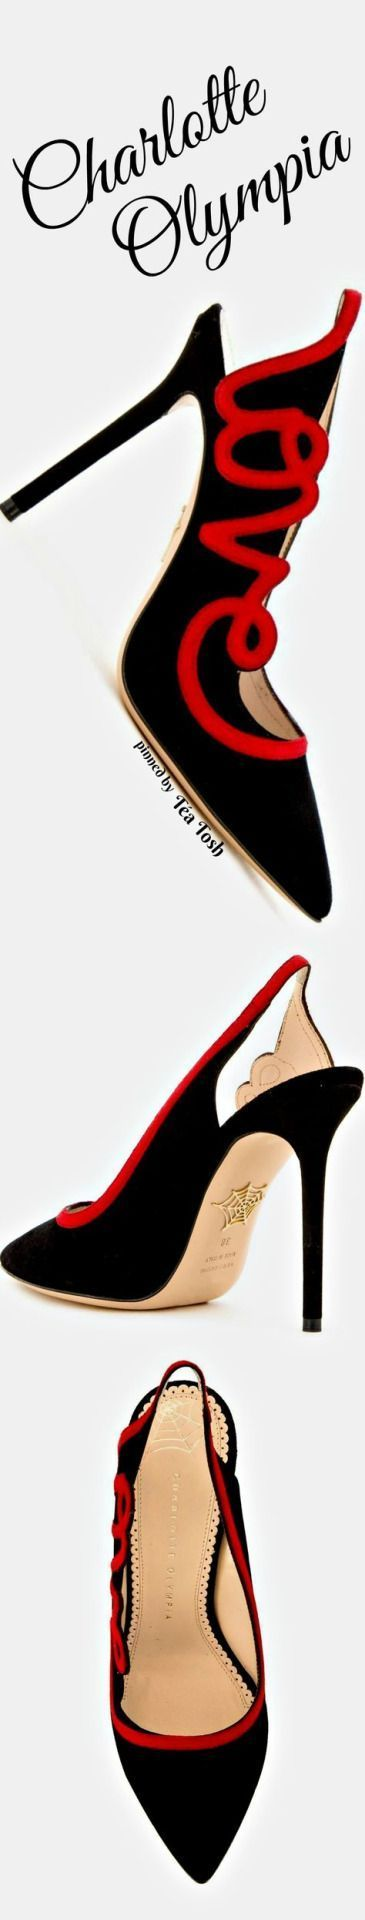 ❇Téa Tosh❇ Charlotte Olympia Love pumps #charlotteolympiaheelsred